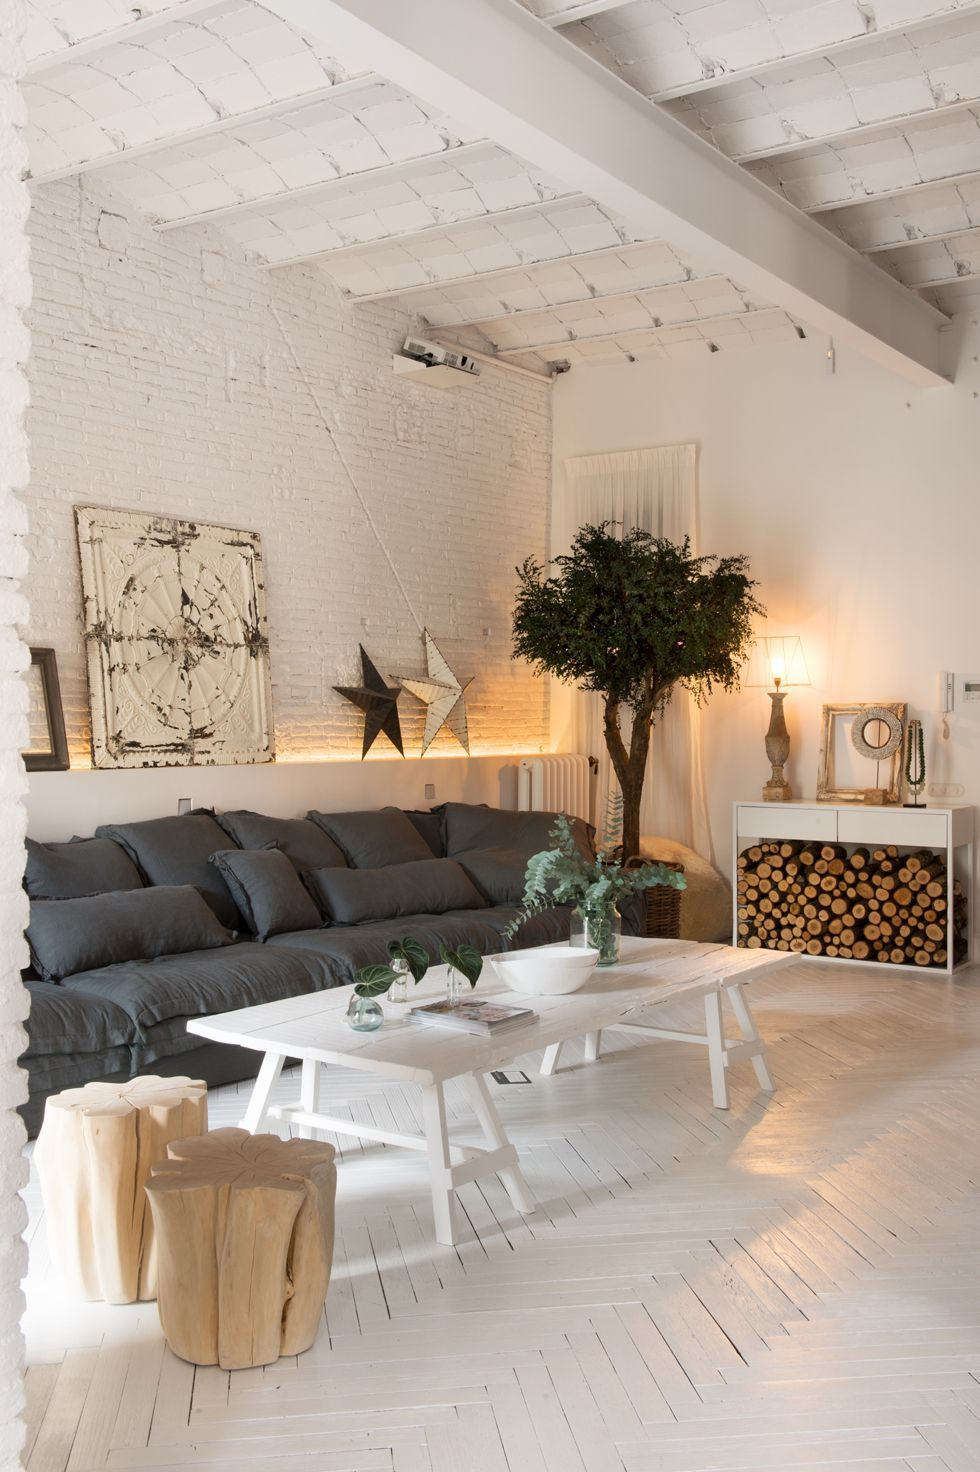 10 Indirect Lighting Ideas That Create A Stylish Home In